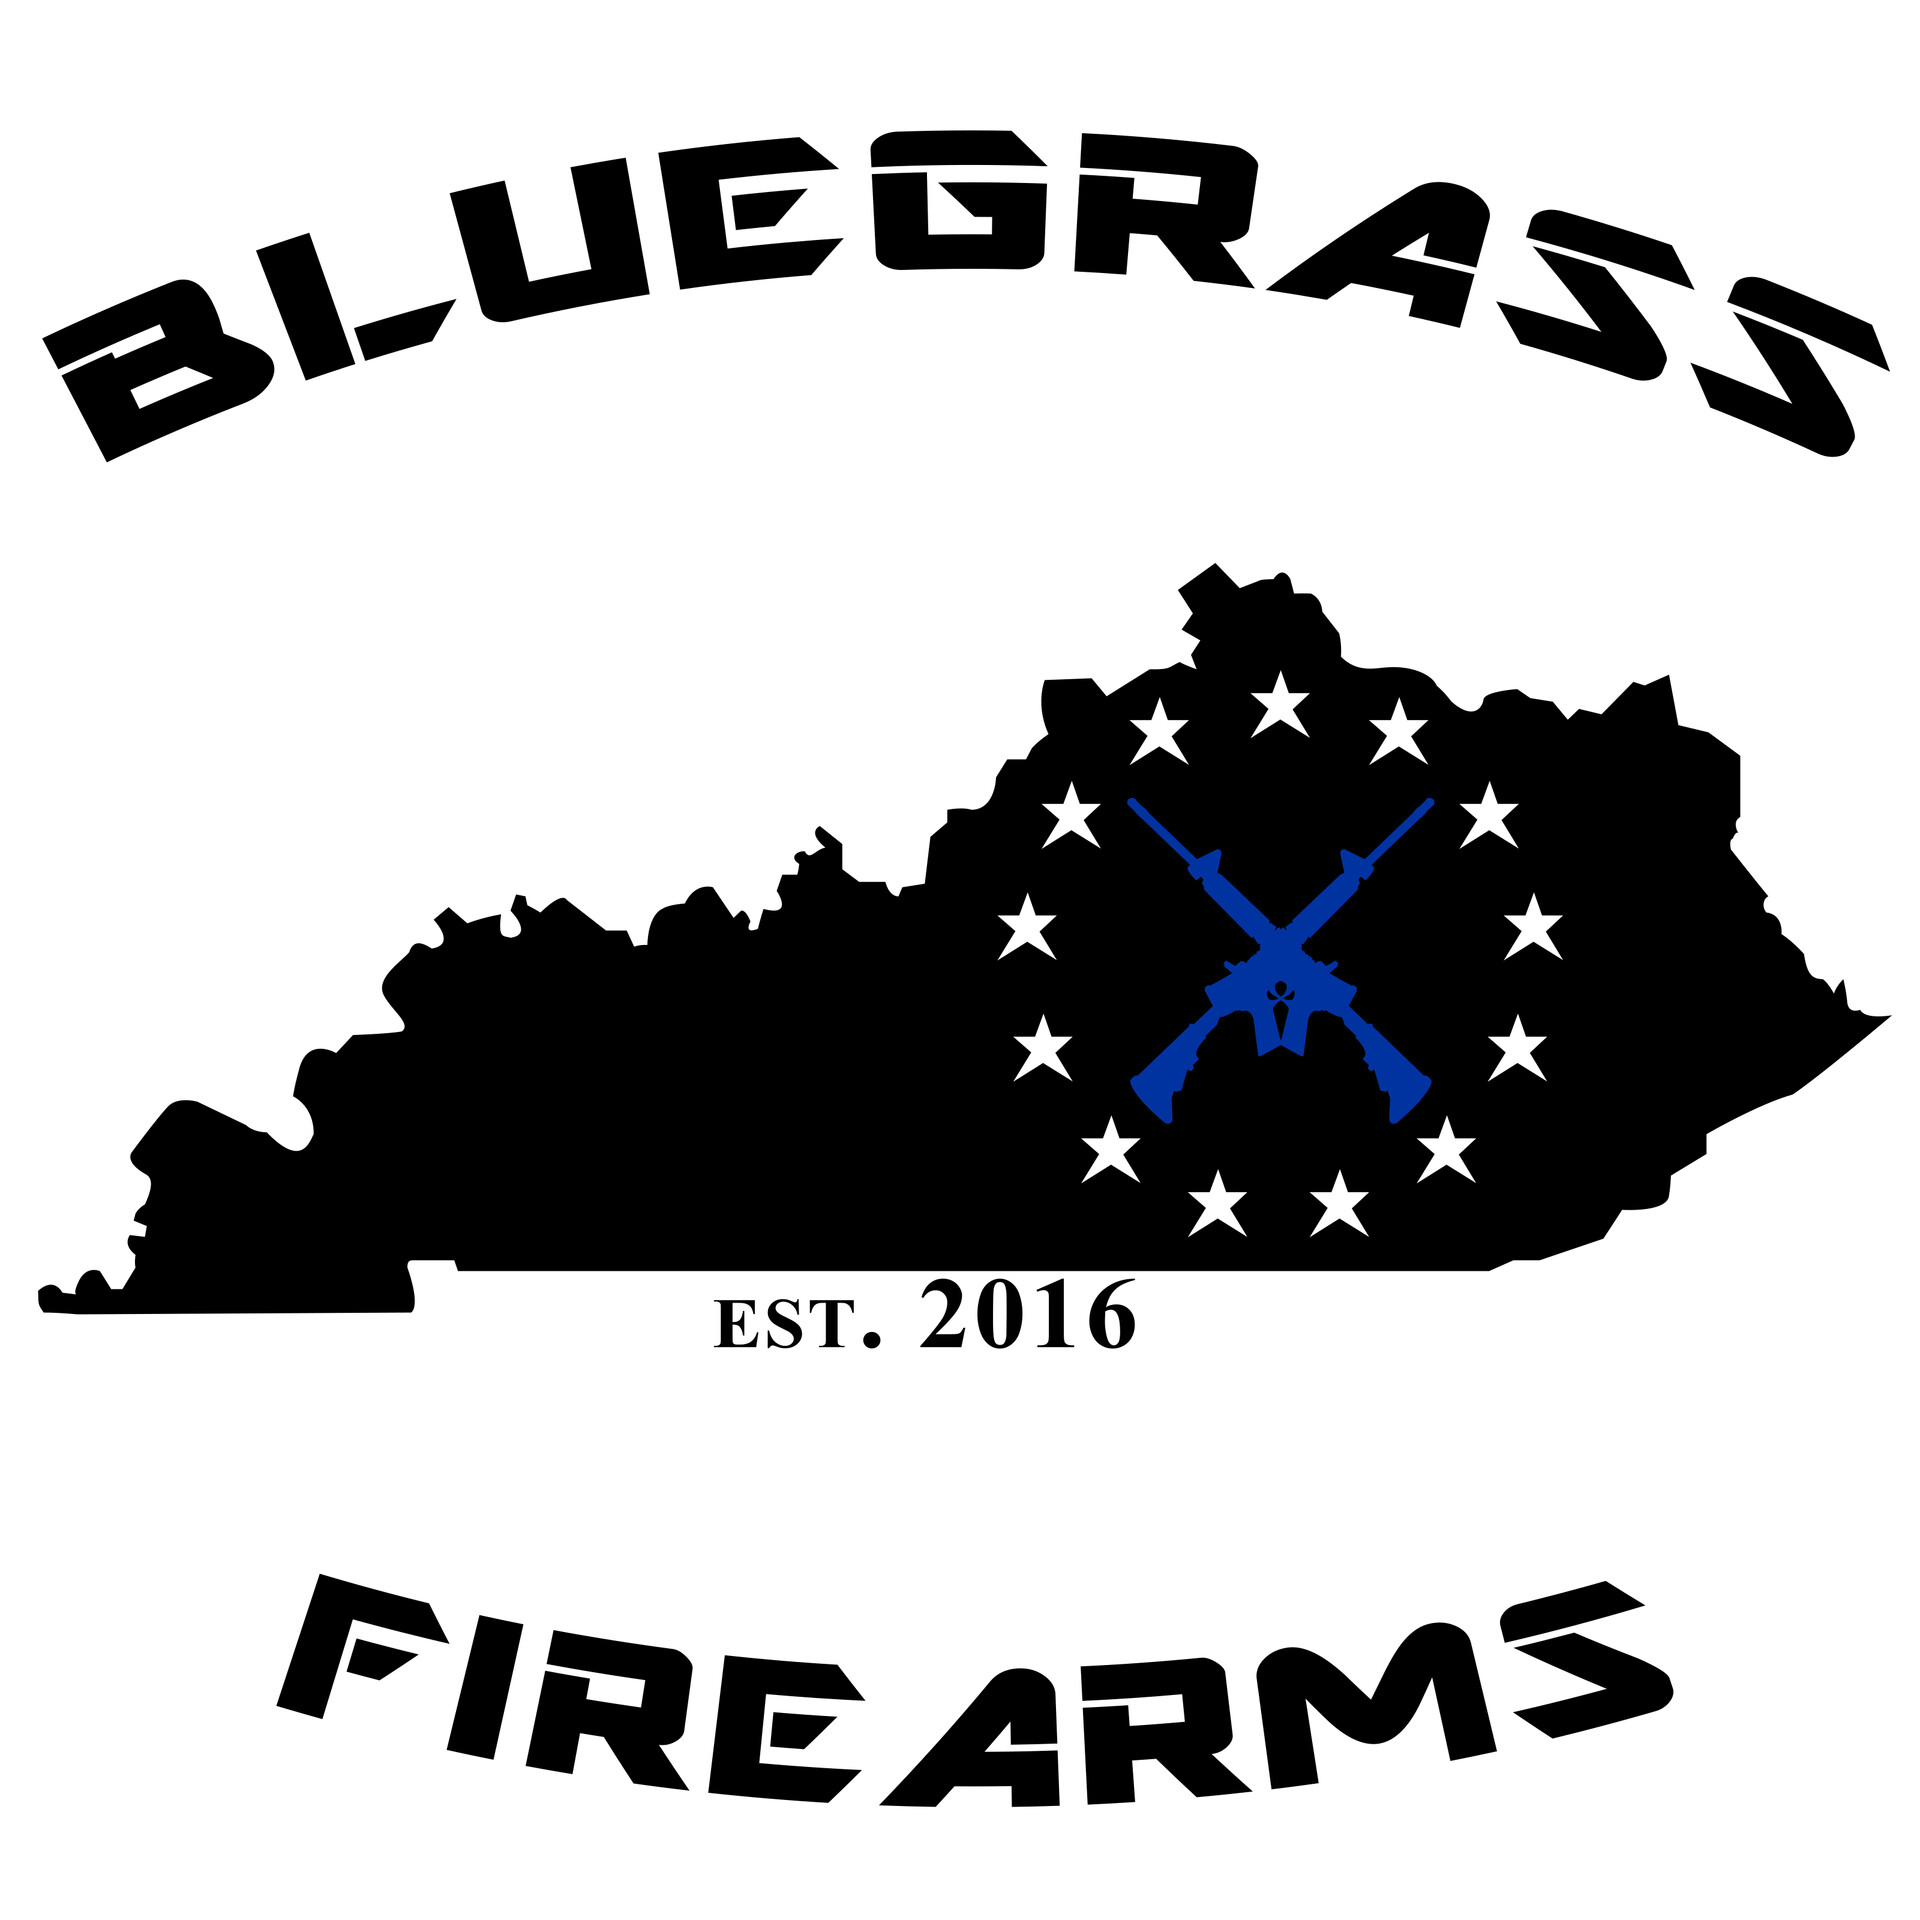 The final version of the logo for Bluegrass Firearms